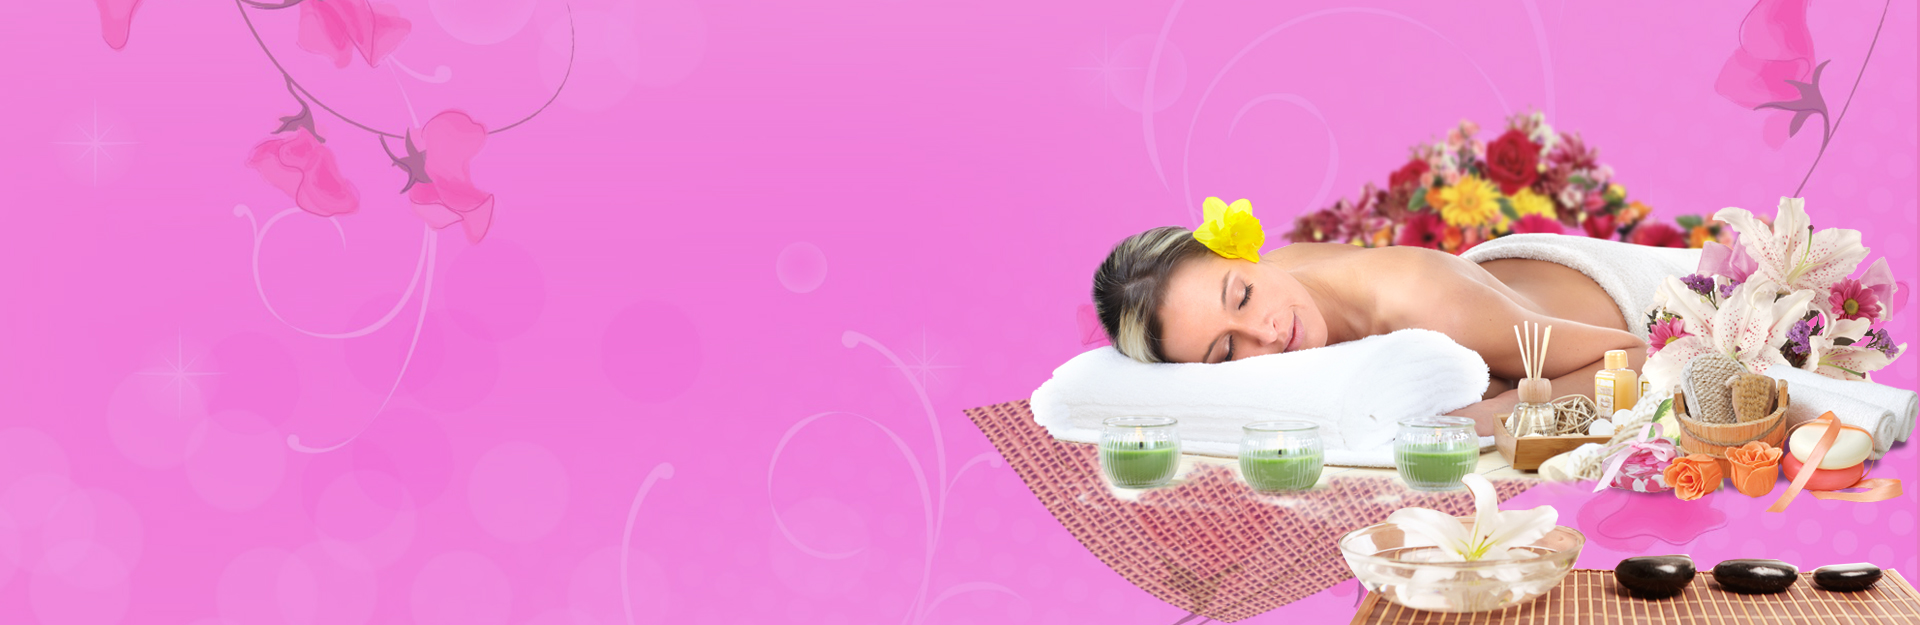 women relaxing in plesant enviornment after massage